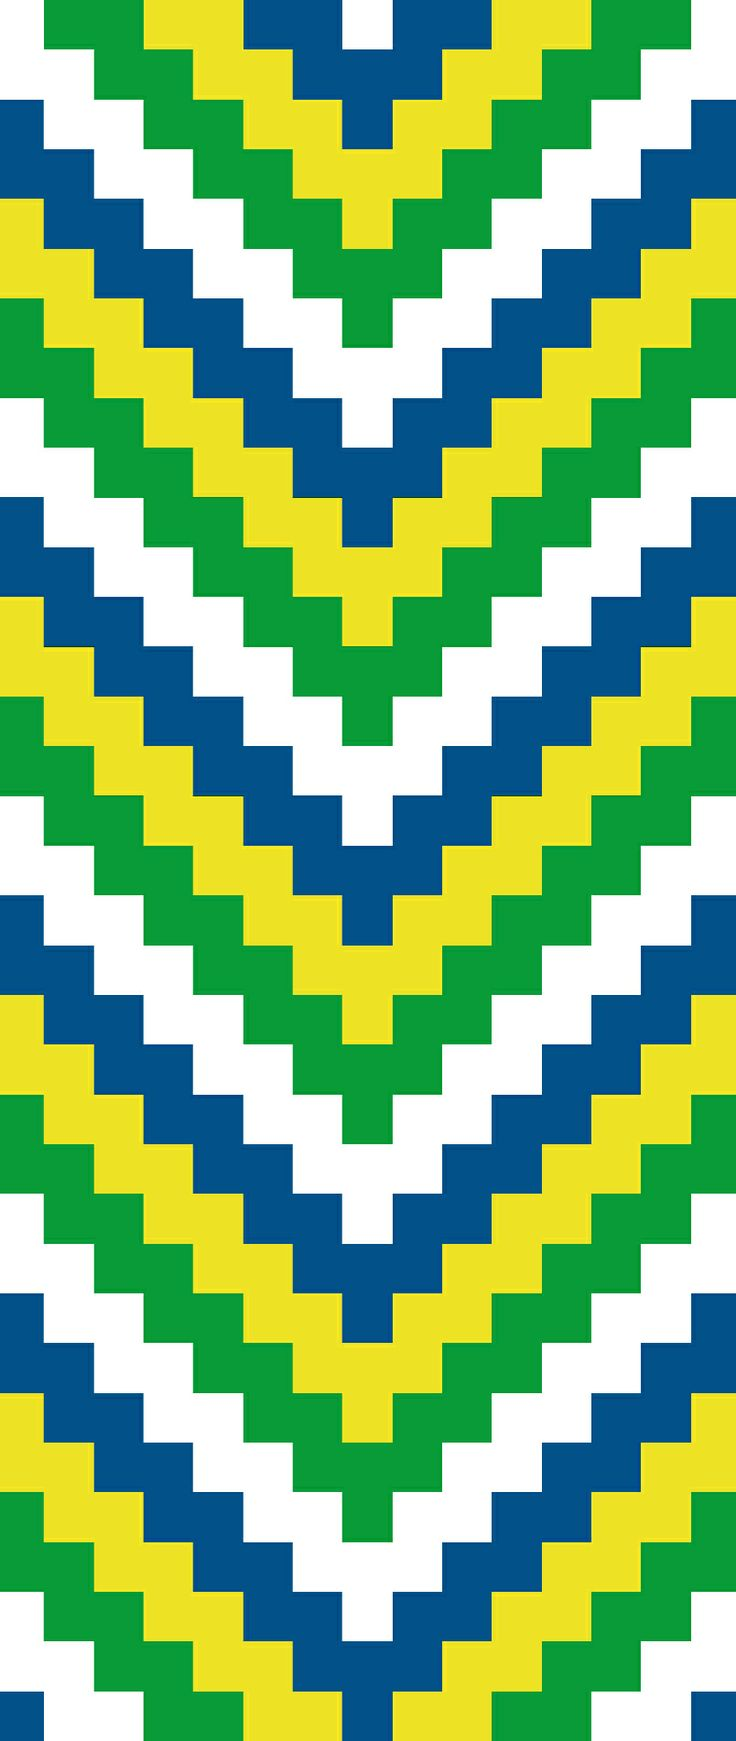 what colour is brazil flag